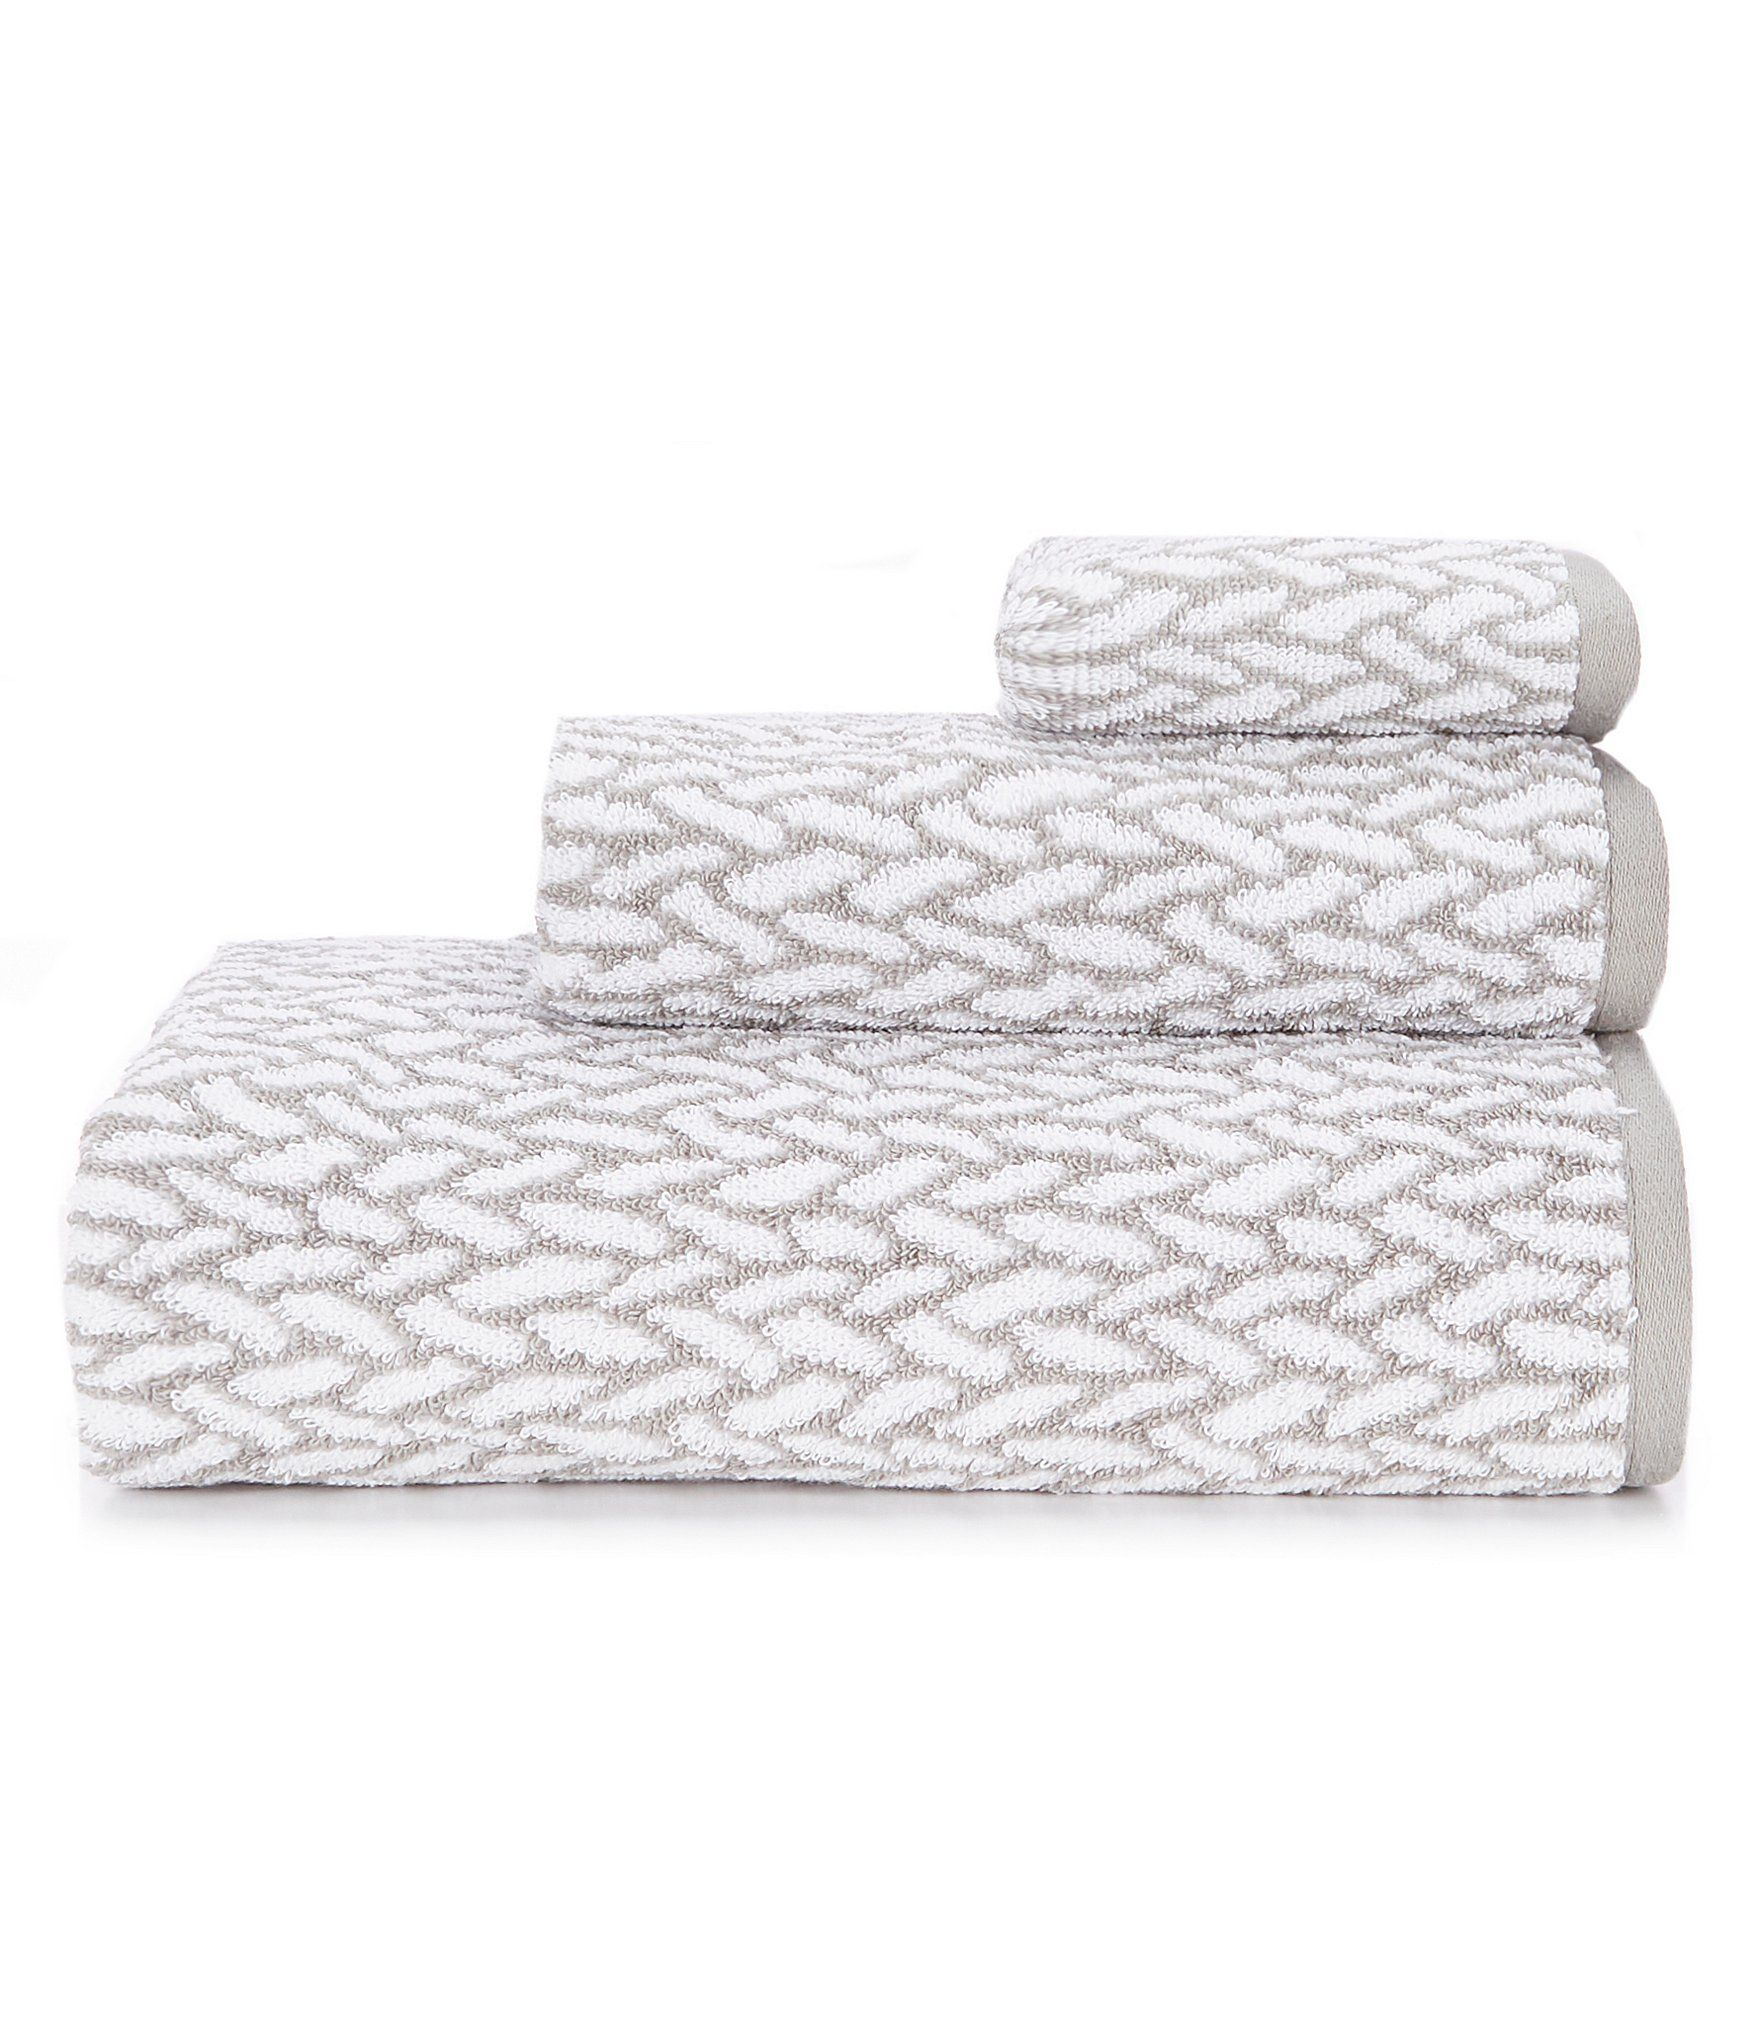 Lauren Ralph Lauren Sanders Basketweave Bath Towels Pewter Grey